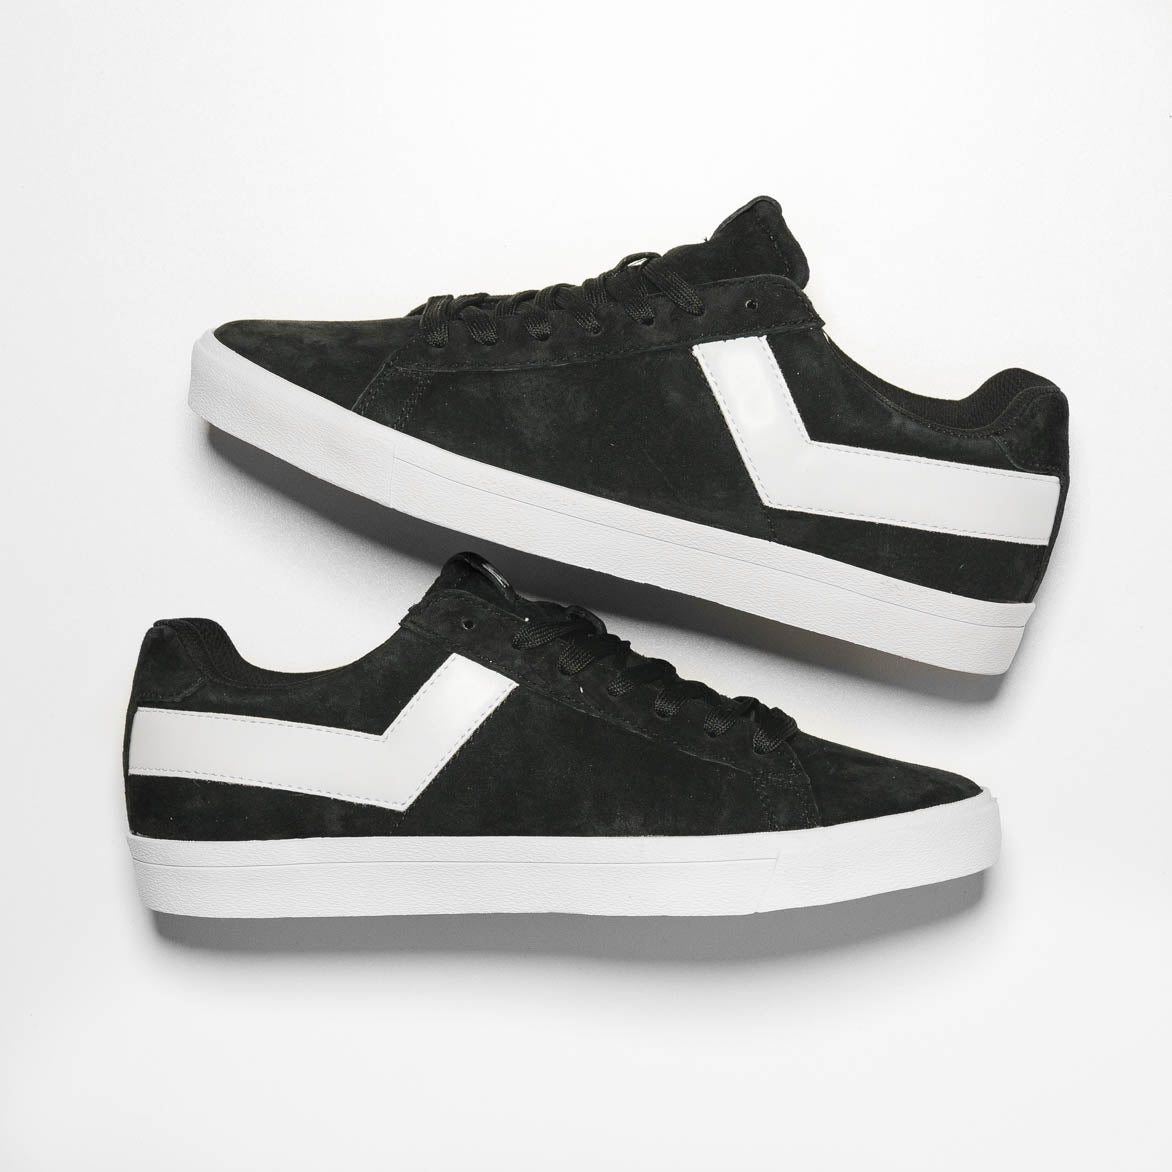 TOPSTAR SUEDE LOW - BLACK